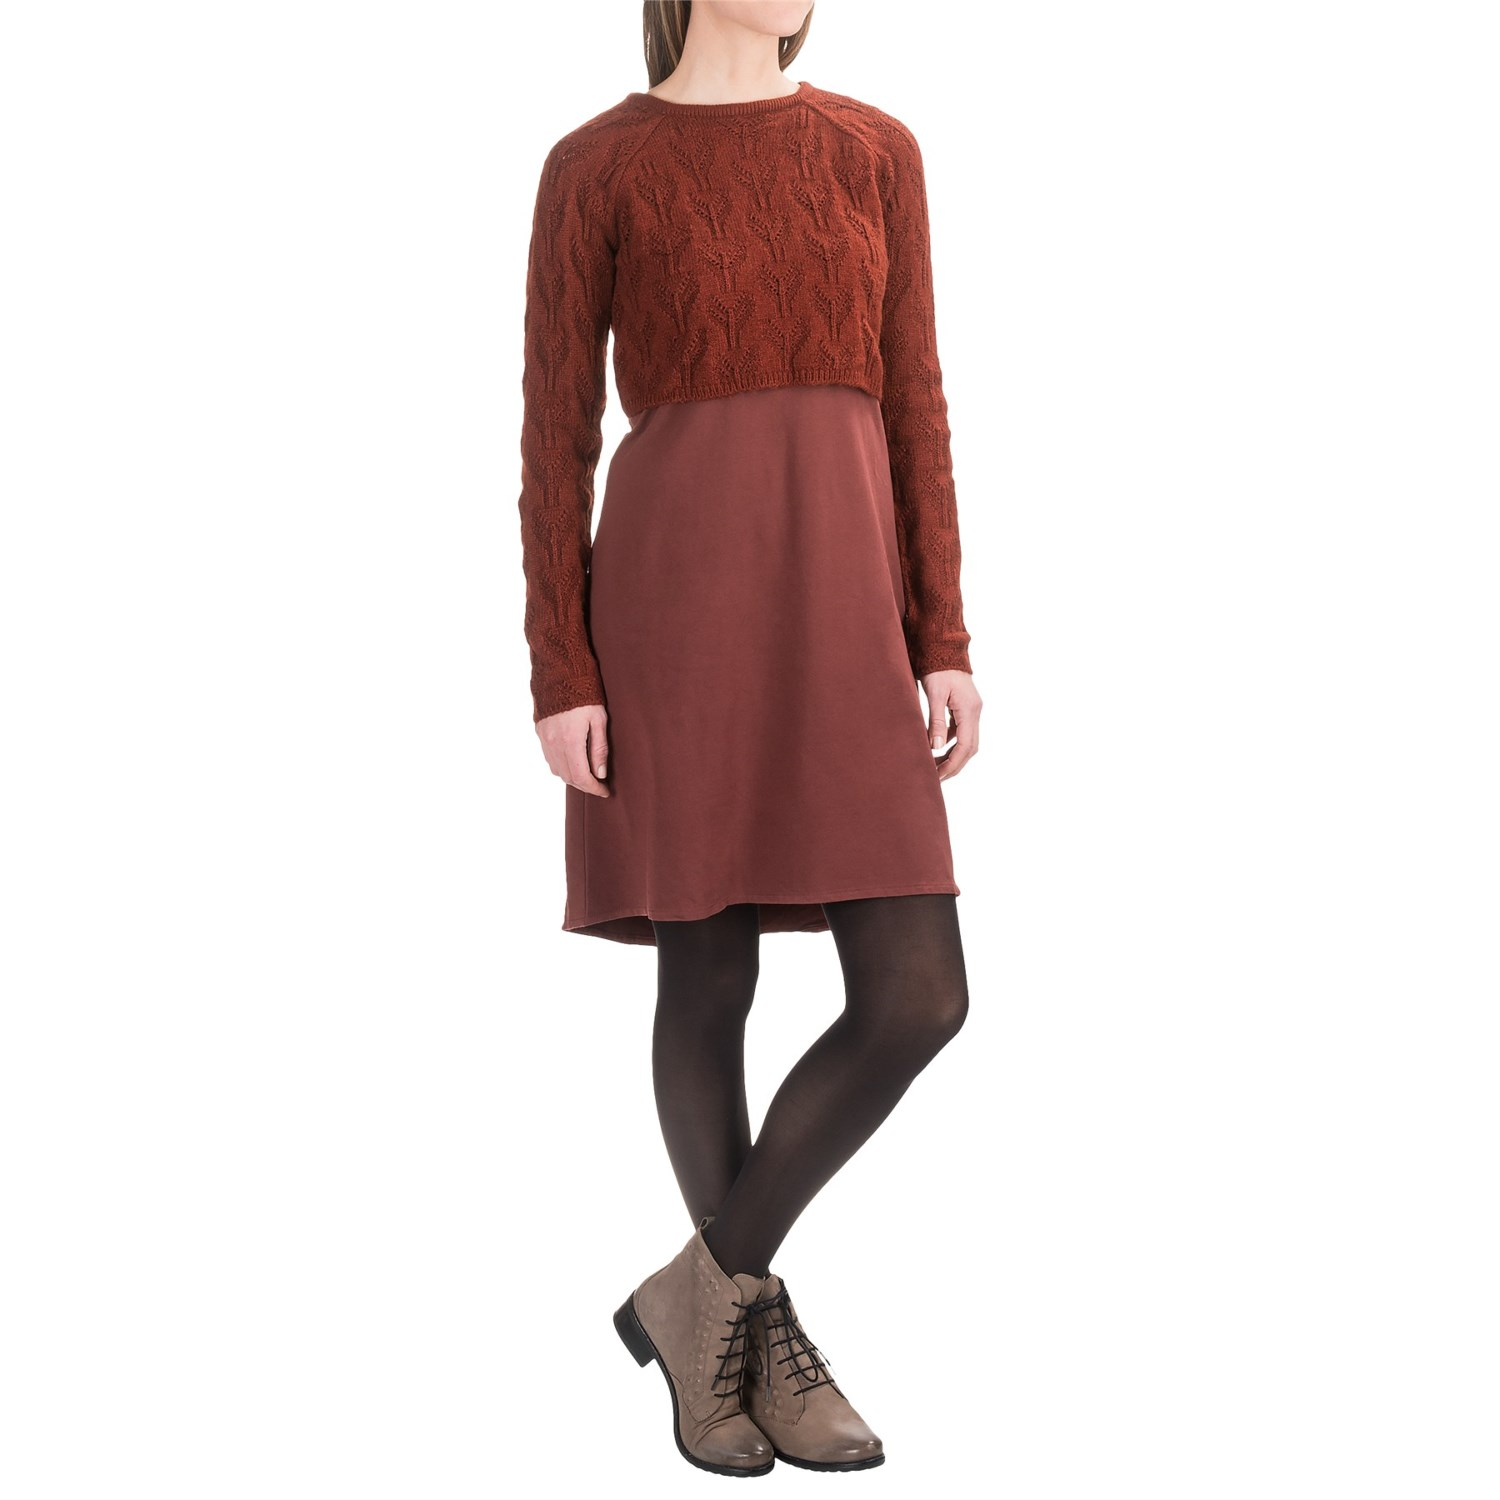 prAna Everly Dress with Cropped Sweater (For Women) - Save 55%